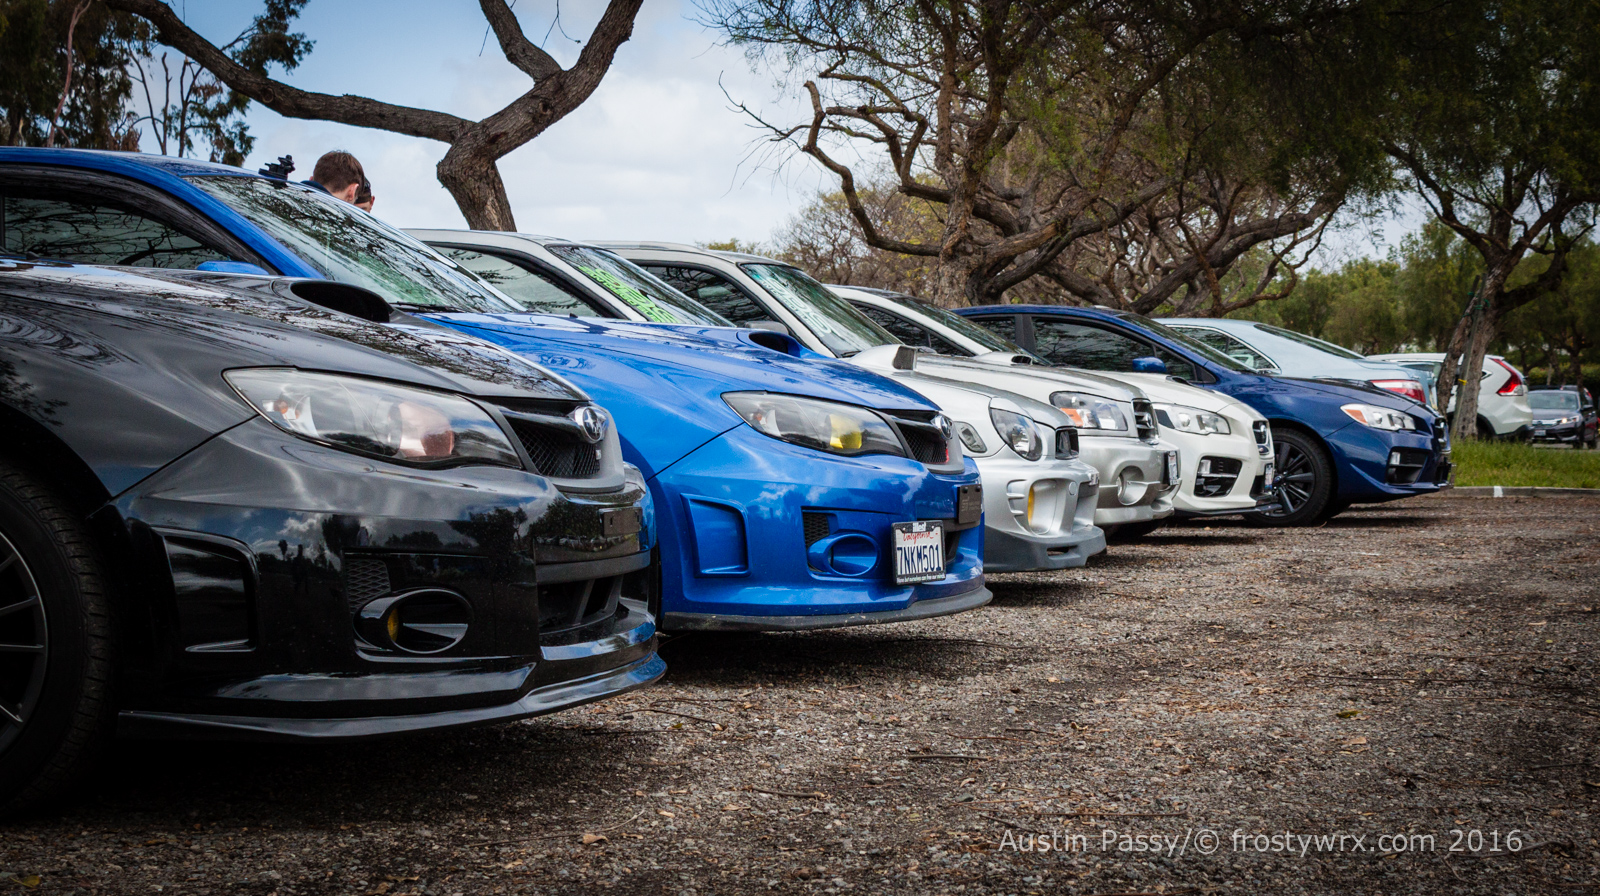 Subarus lined up